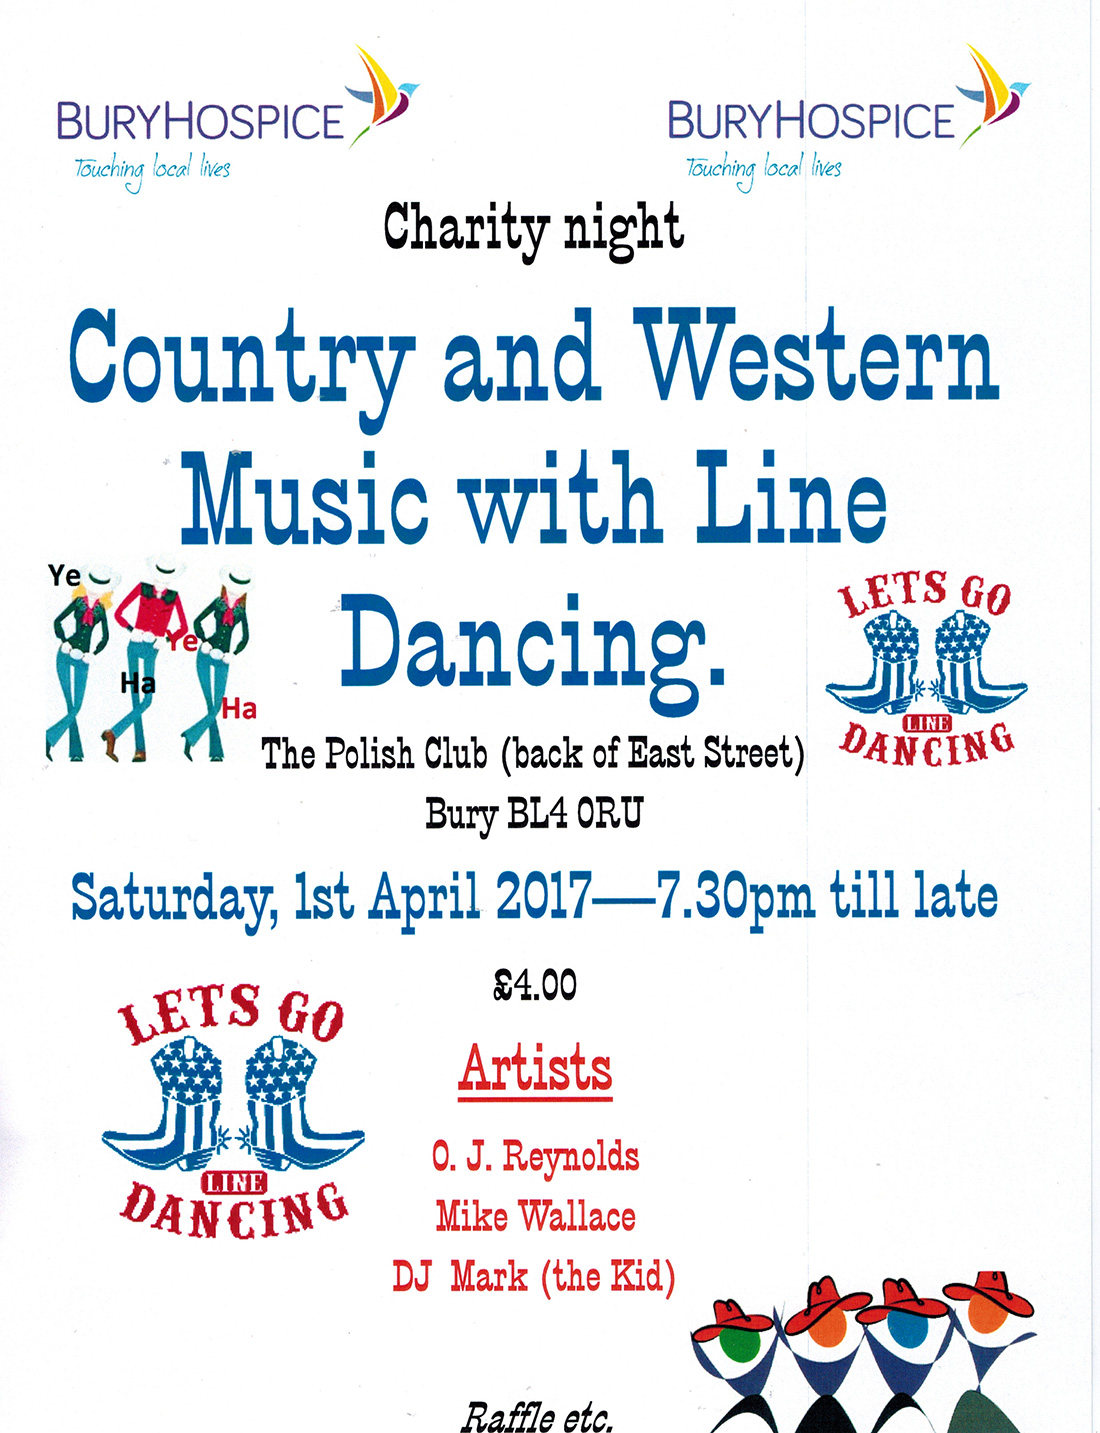 COuntry and Western Bury Hospice poster